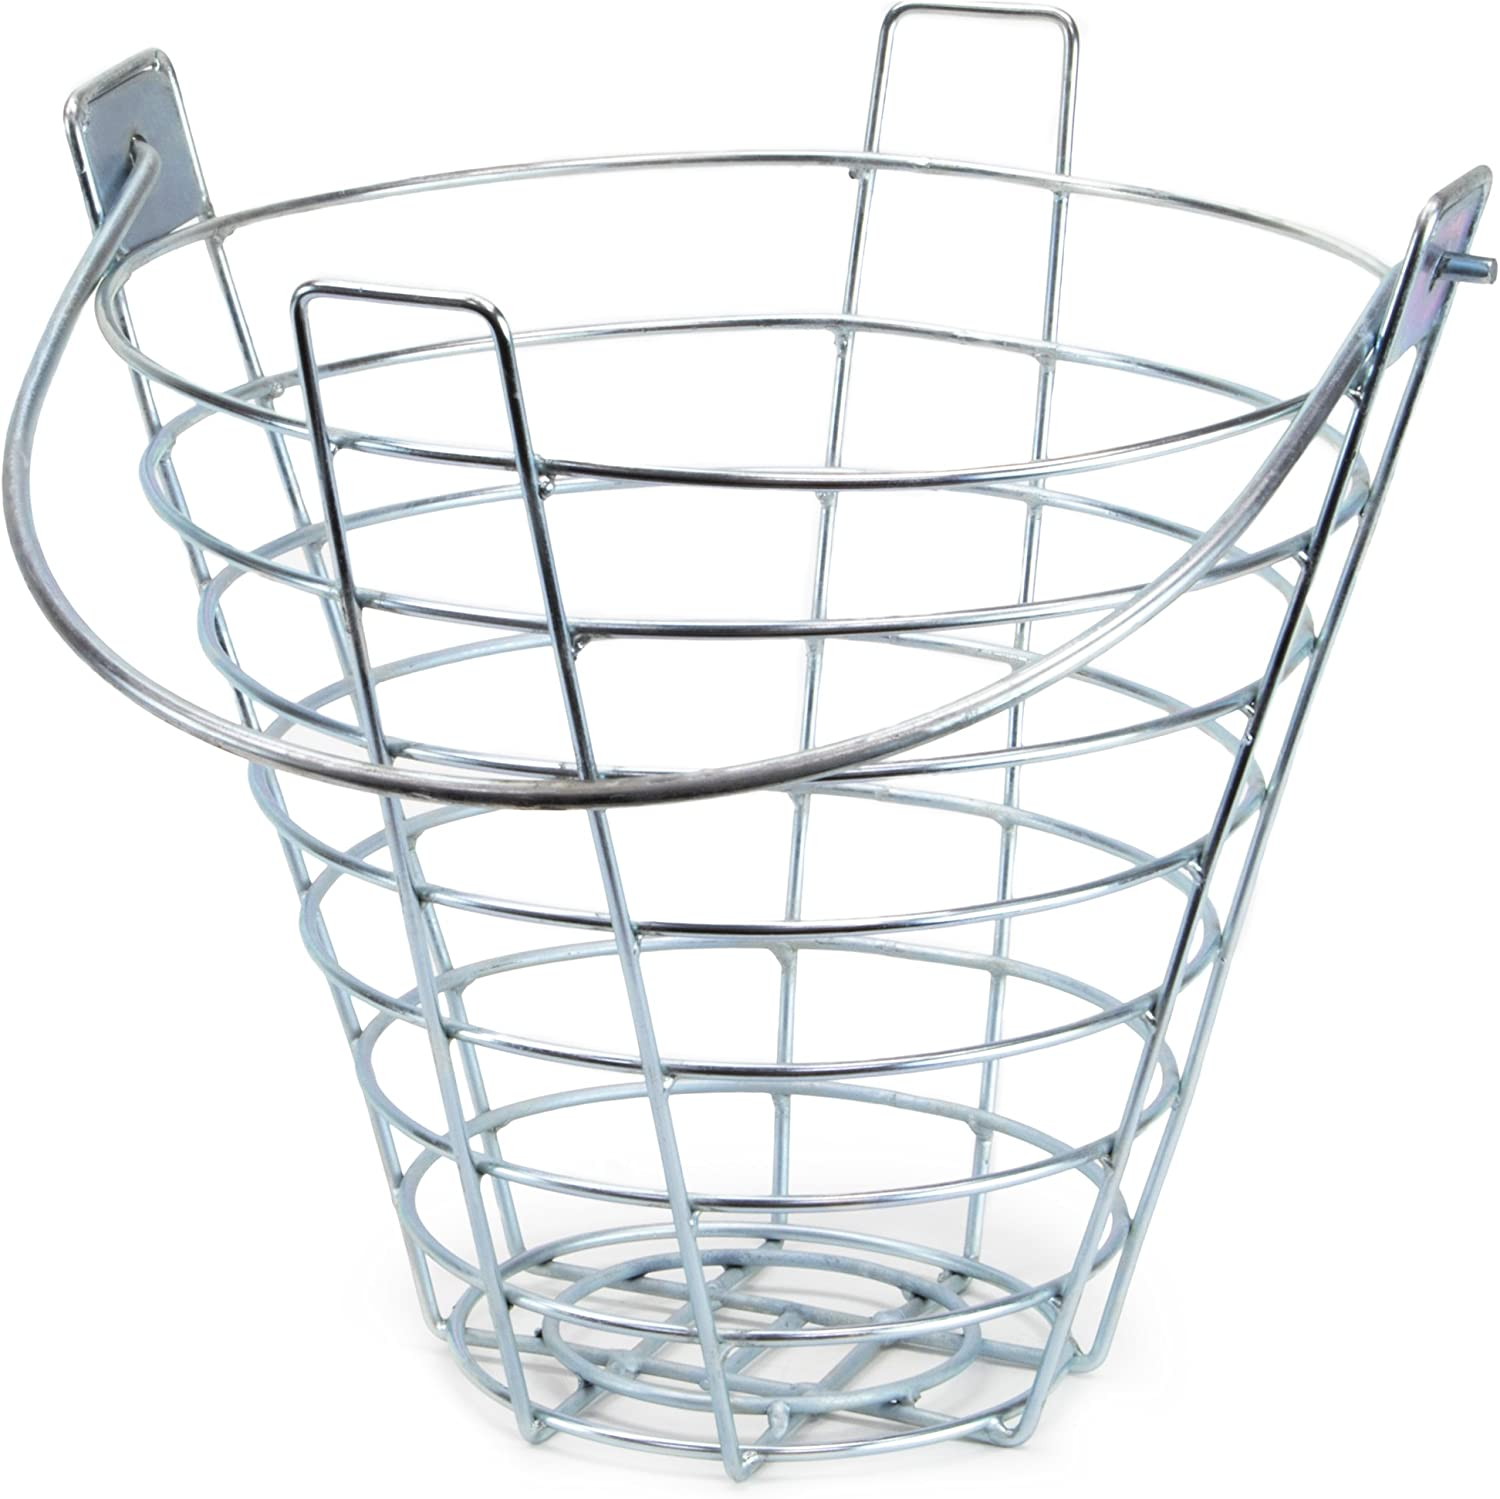 Crown Sporting Goods Steel Wire Golf Range Buckets: Metal Ball Carrying Practice Container with Handle - Holds 144 Balls